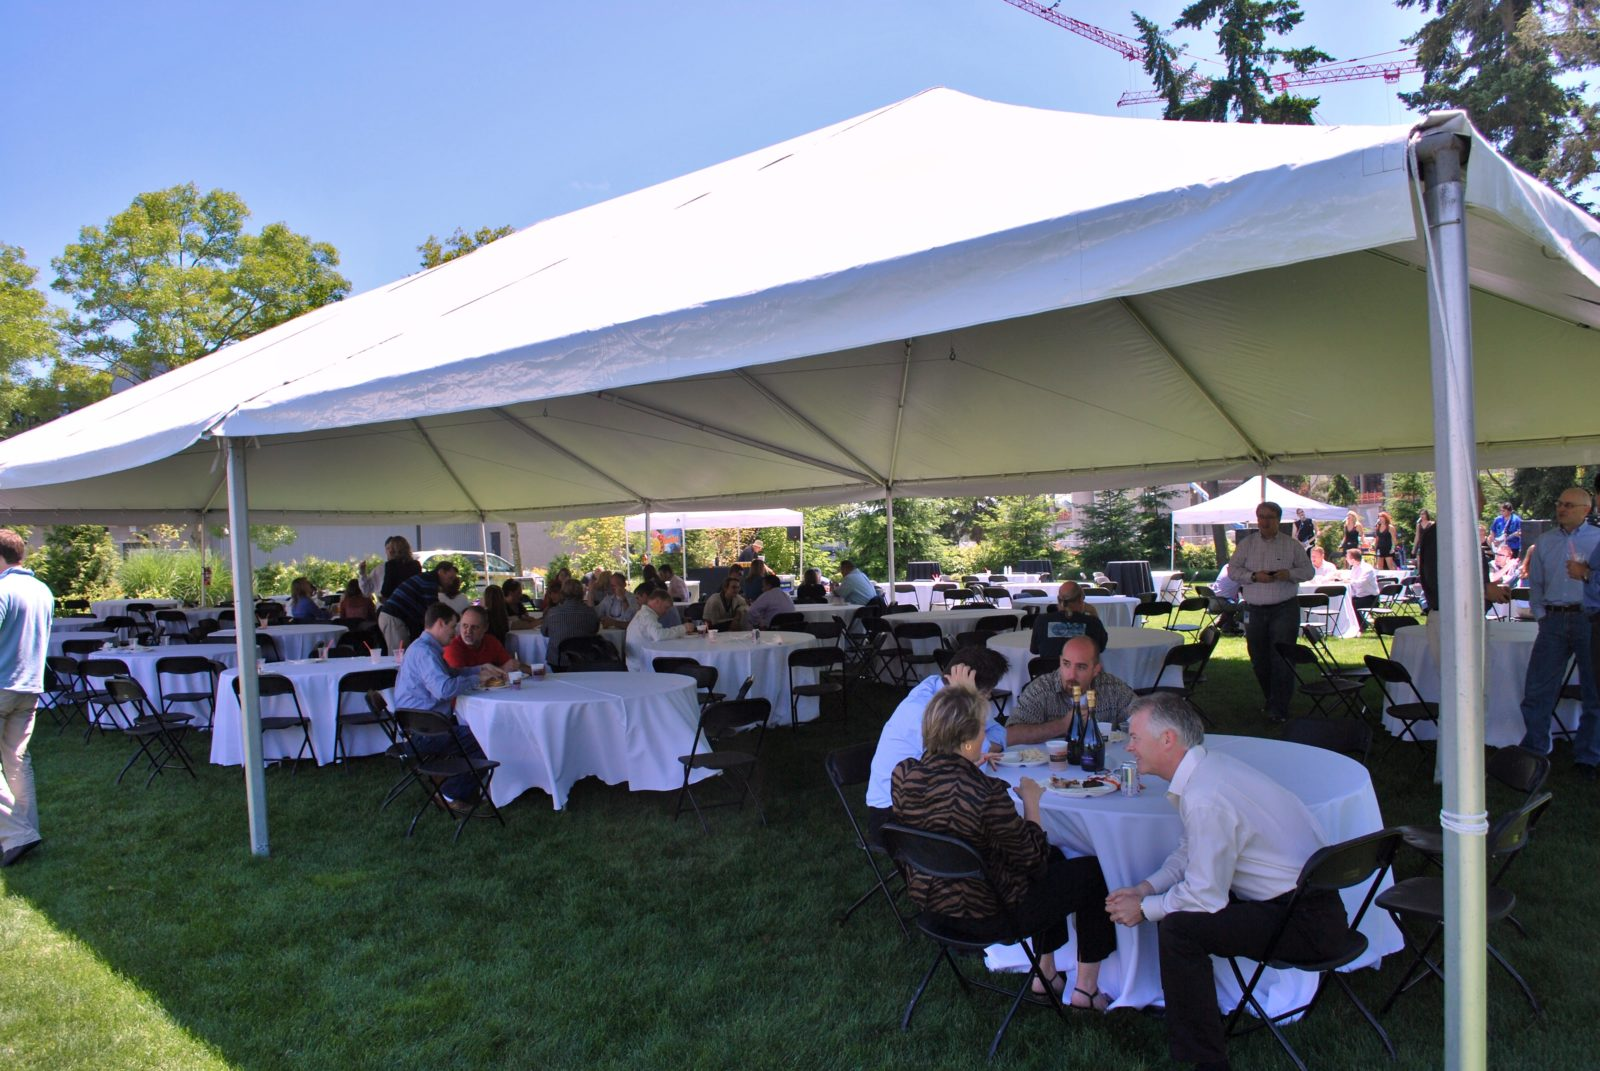 Tent Table And Chair Rentals Large Tent Rental With Optional Heating And Interior Decor